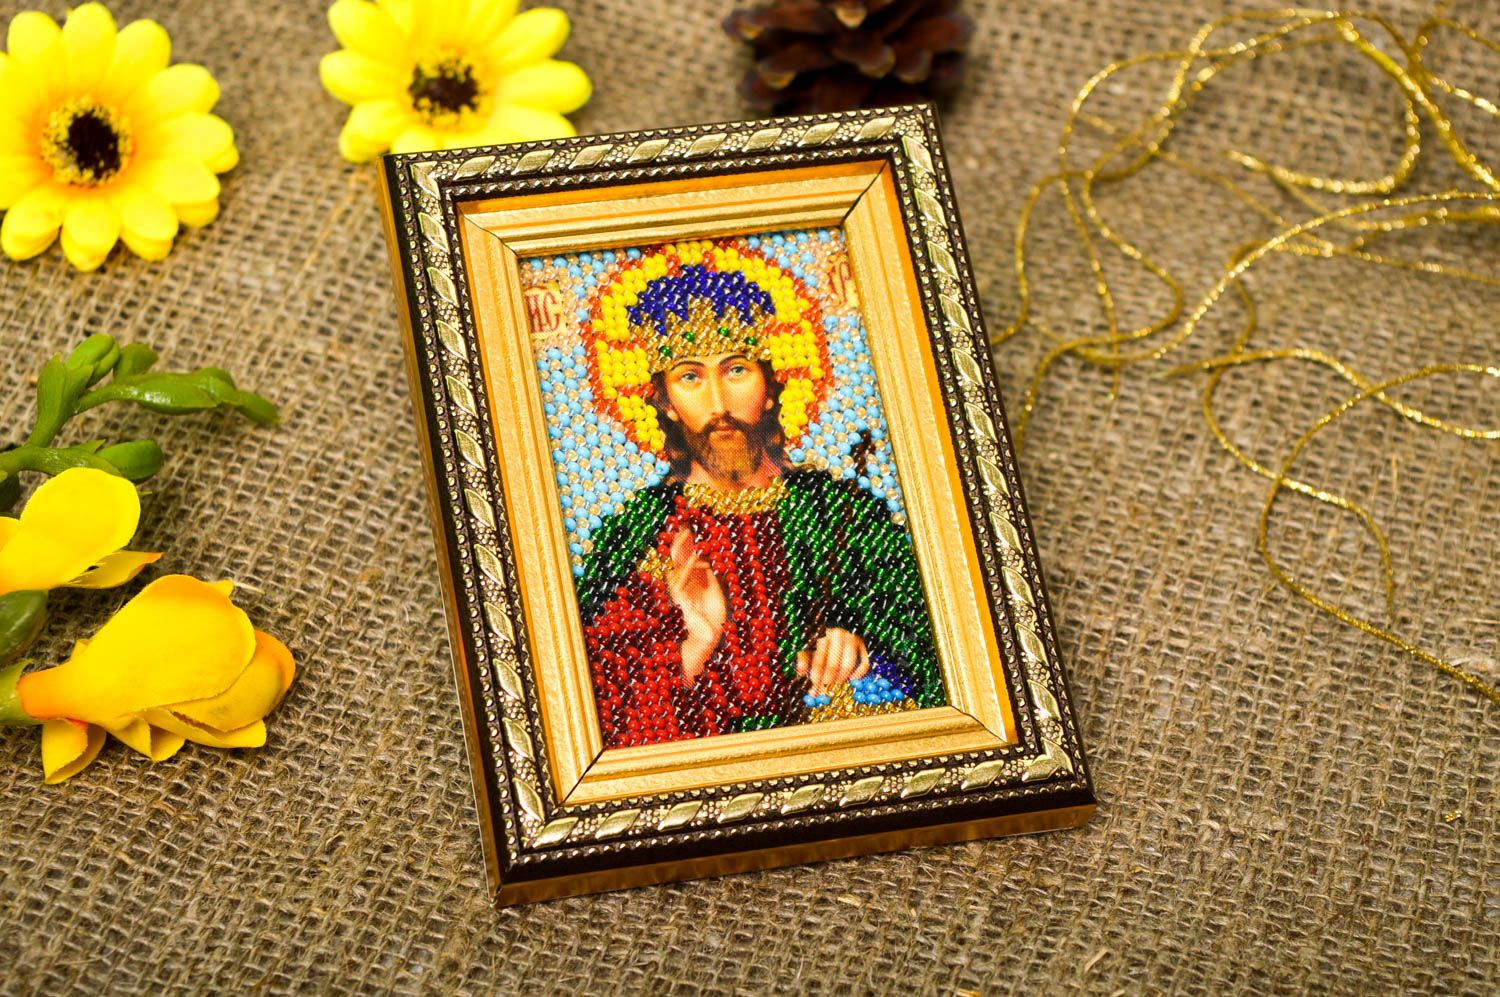 Handmade beautiful designer icon embroidered orthodox icon religious present photo 1